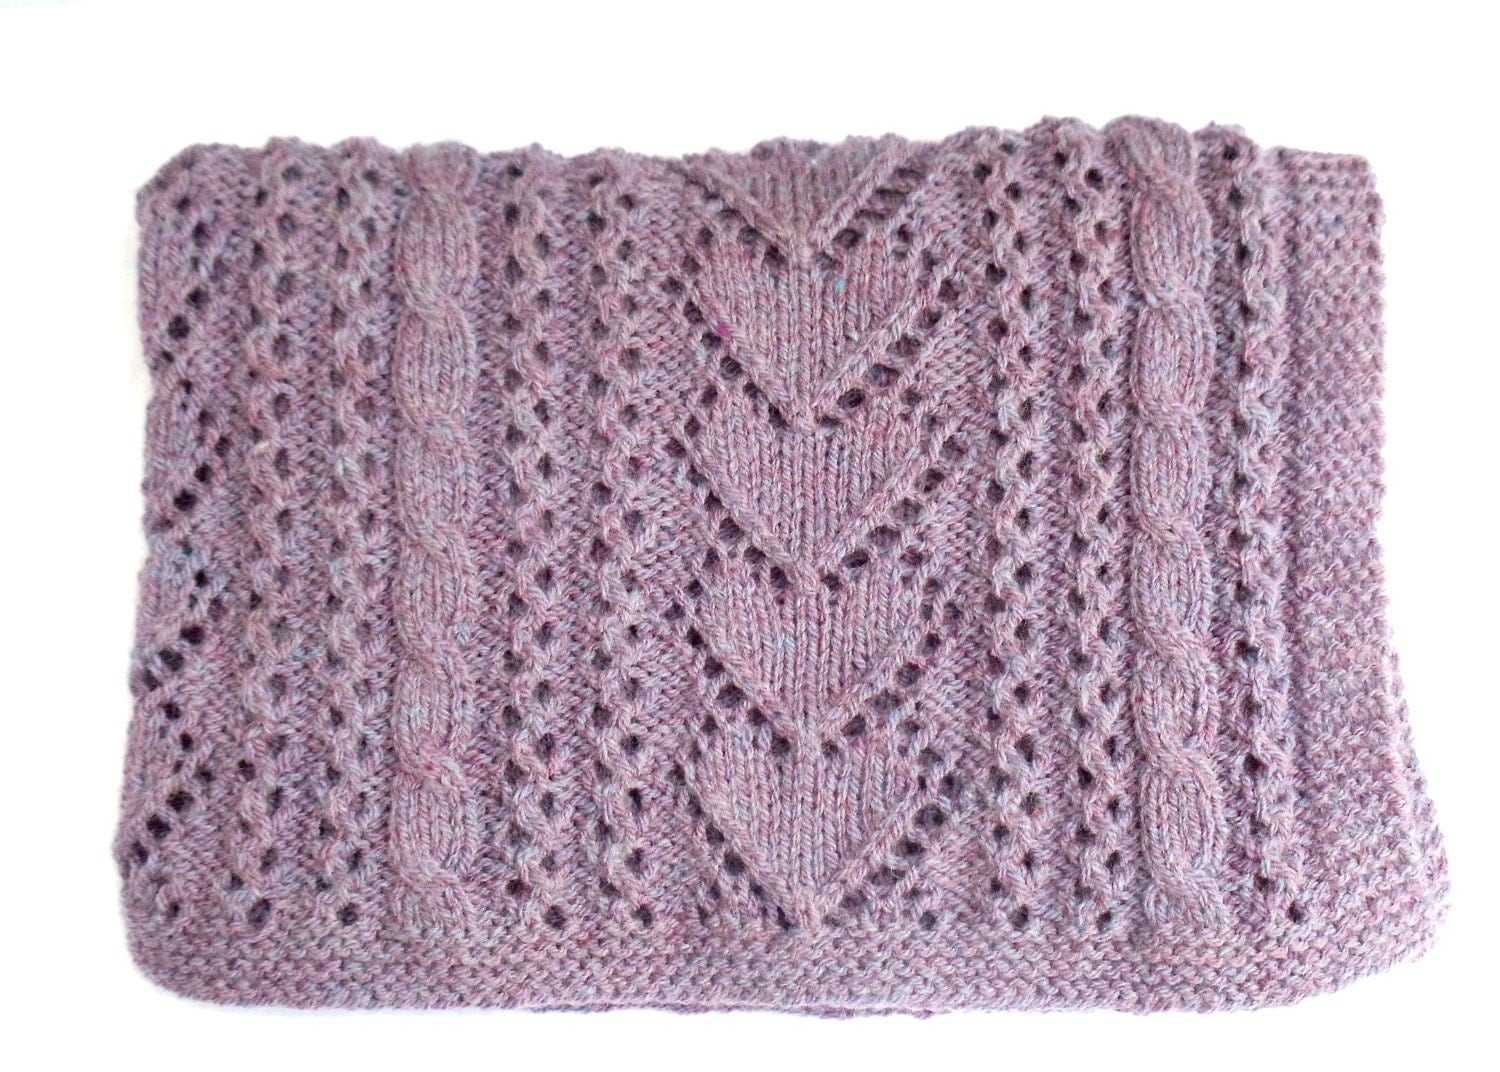 Aran Knitting Patterns To Download : Aran Knitting Pattern Baby Blanket Instant by TheWoollyKnitter